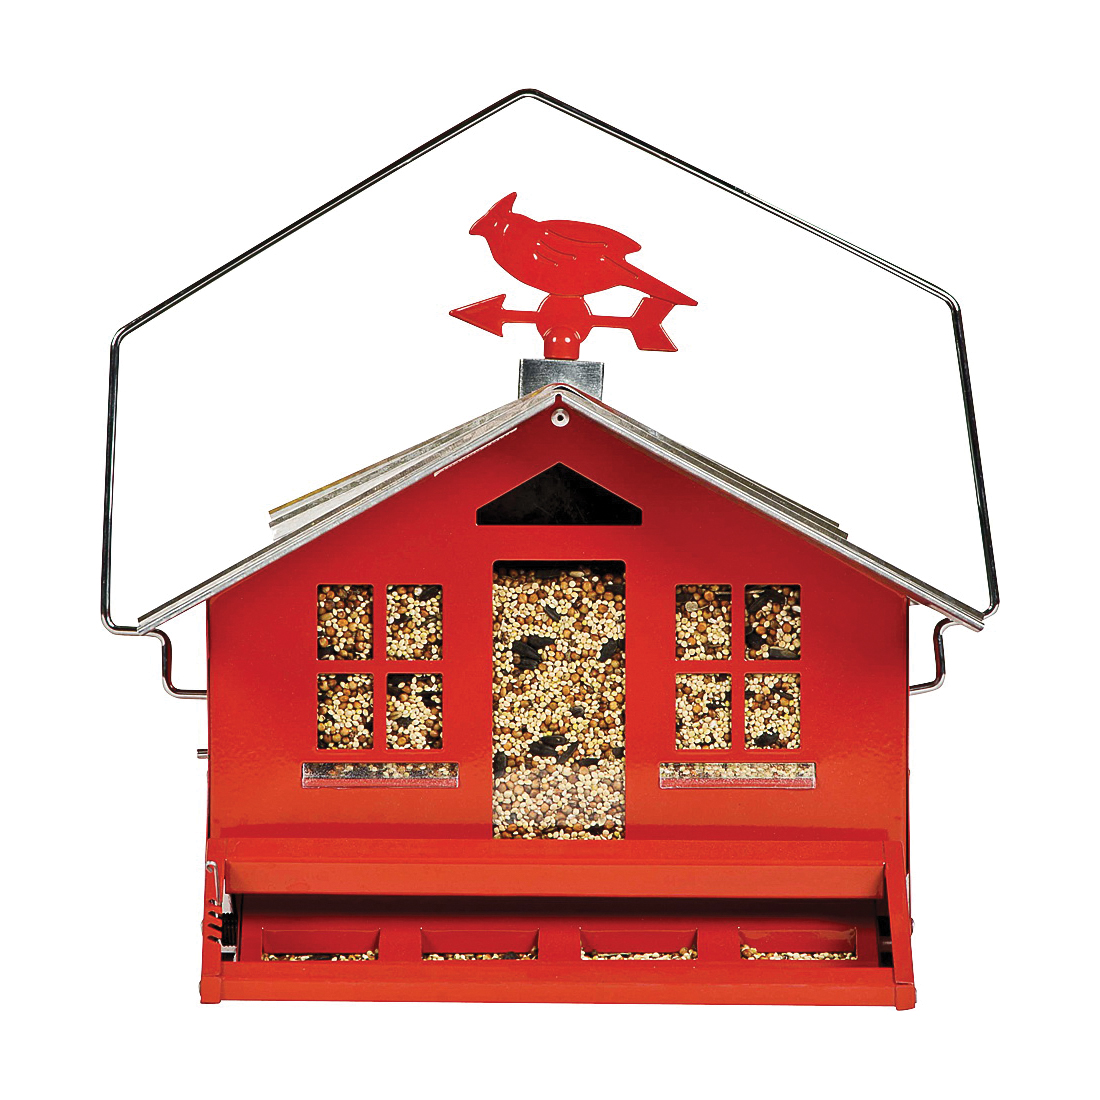 Picture of Perky-Pet Squirrel-Be-Gone II 338 Wild Bird Feeder, Country, 8 lb, Metal, 14 in H, Pole Mounting